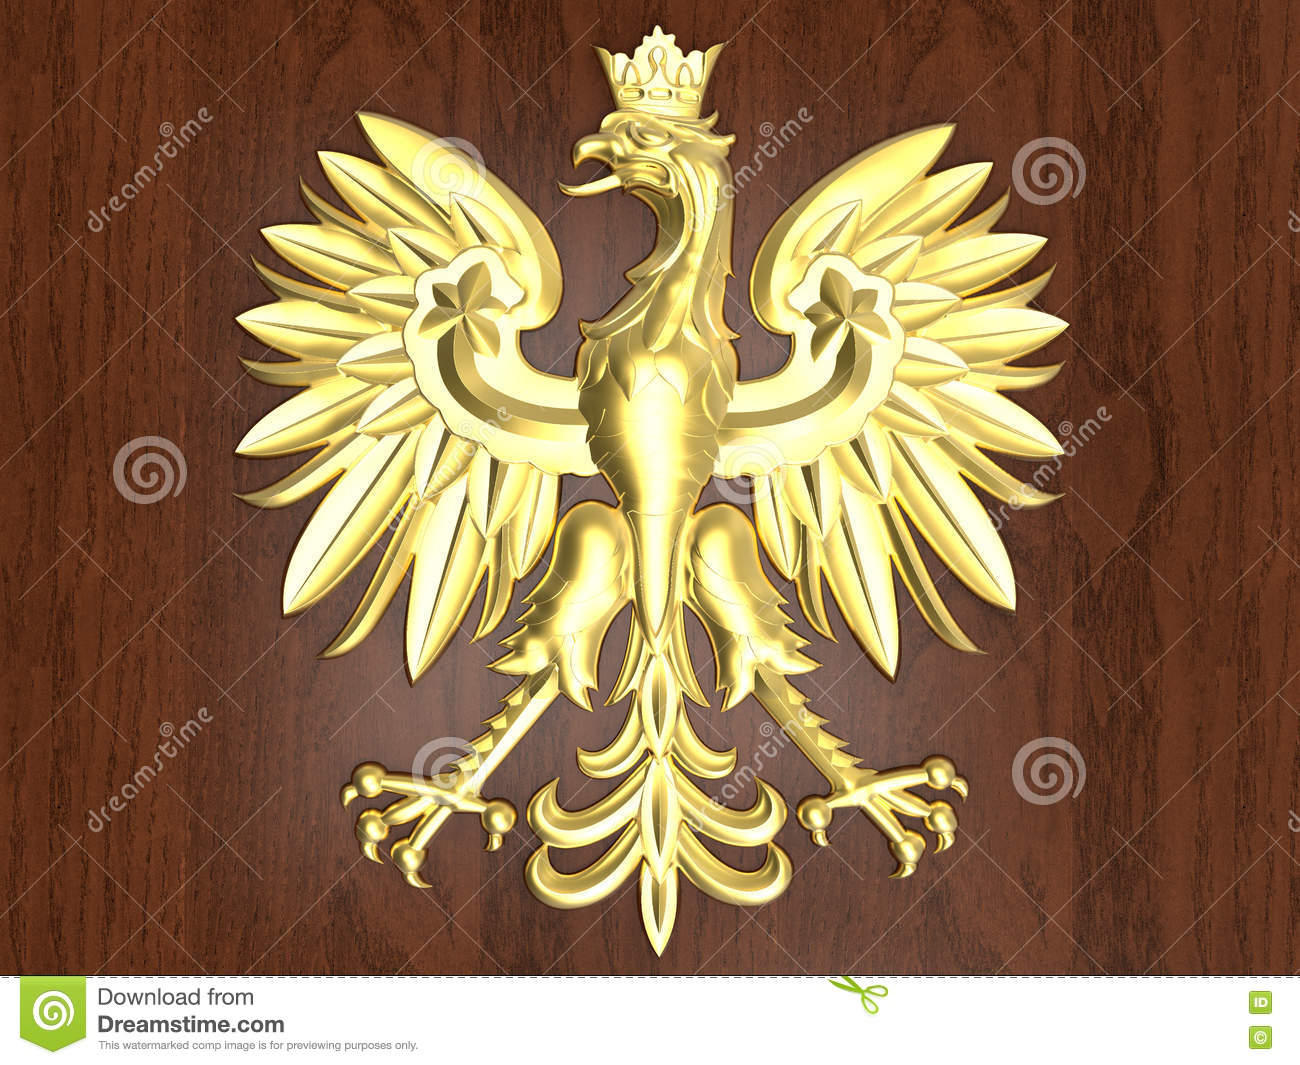 Golden Poland Emblem